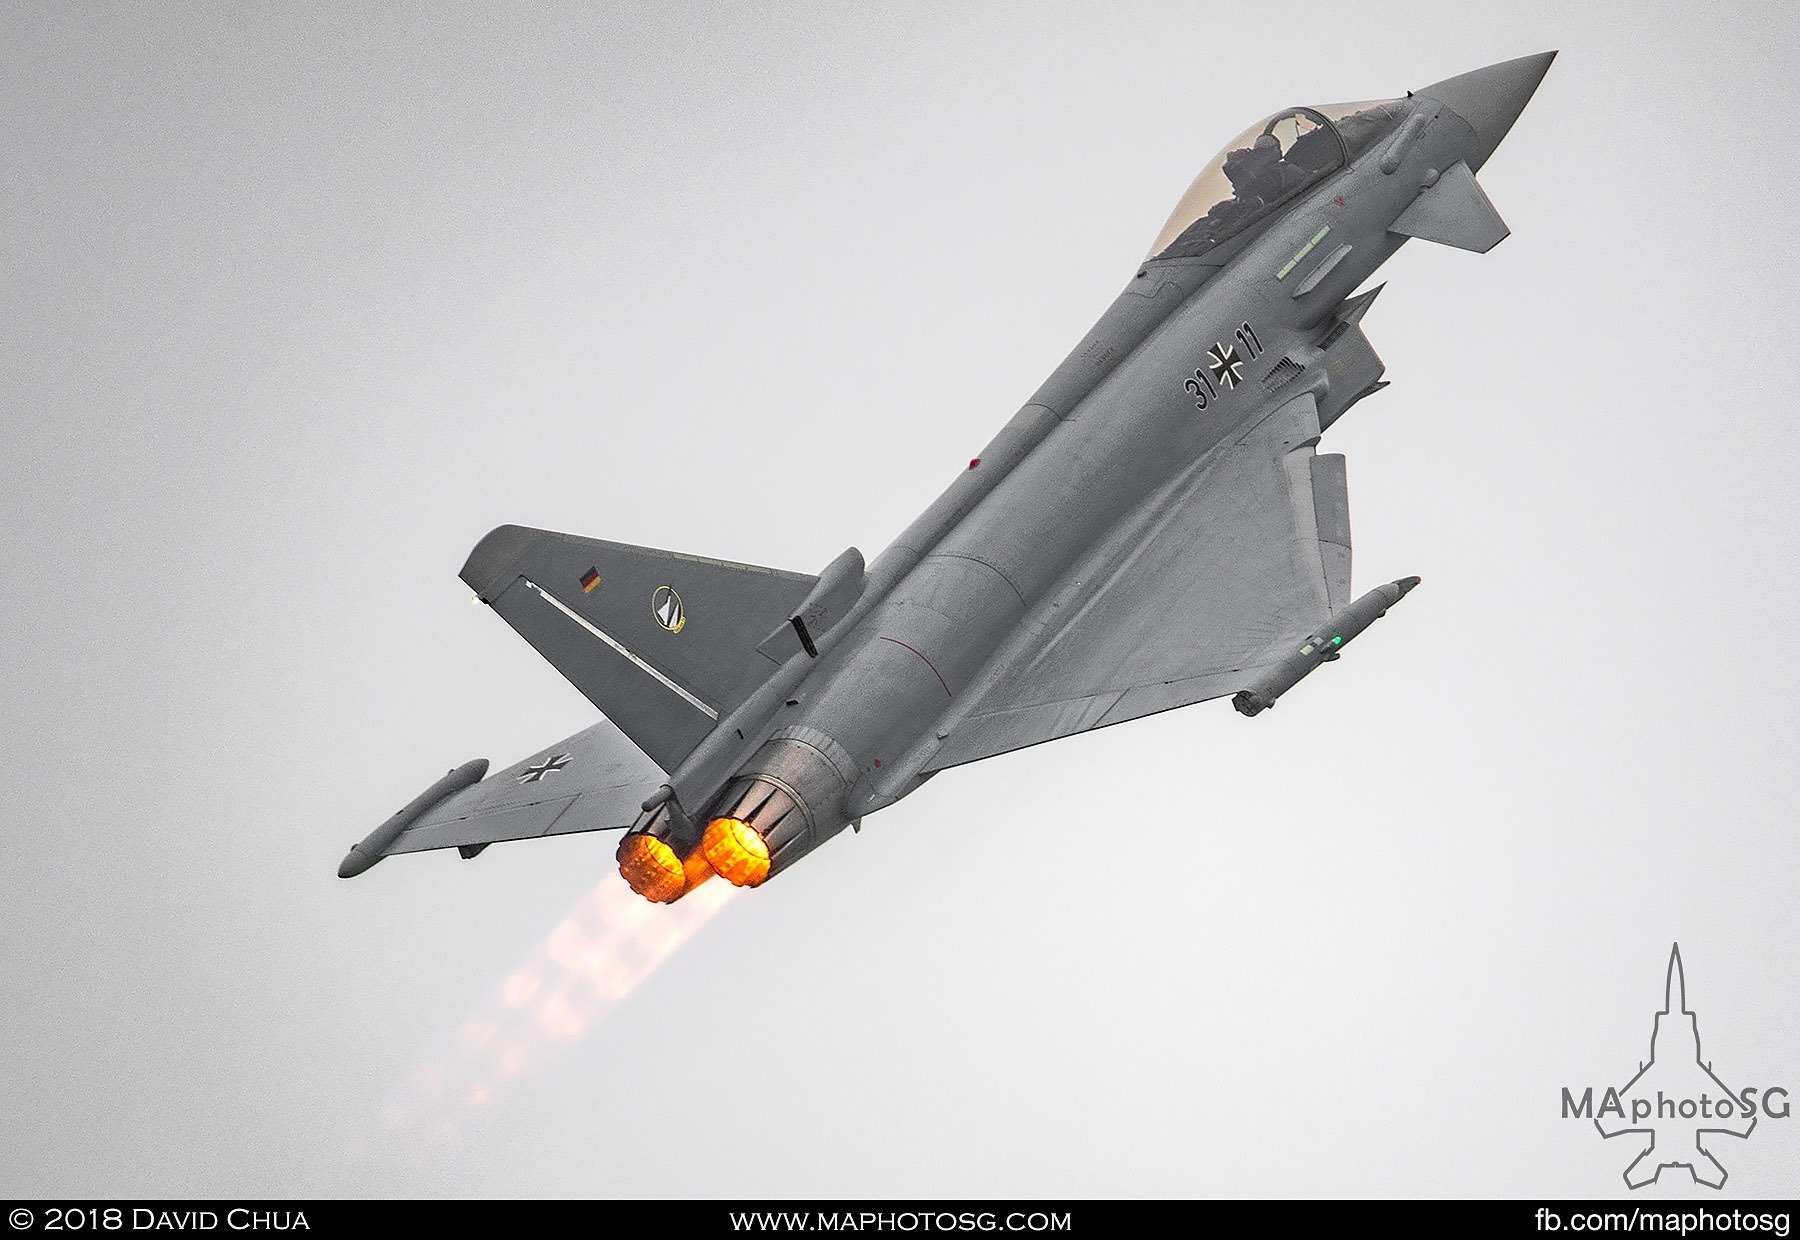 39. Luftwaffe Eurofighter Typhoon performs a vertical climb in afterburners